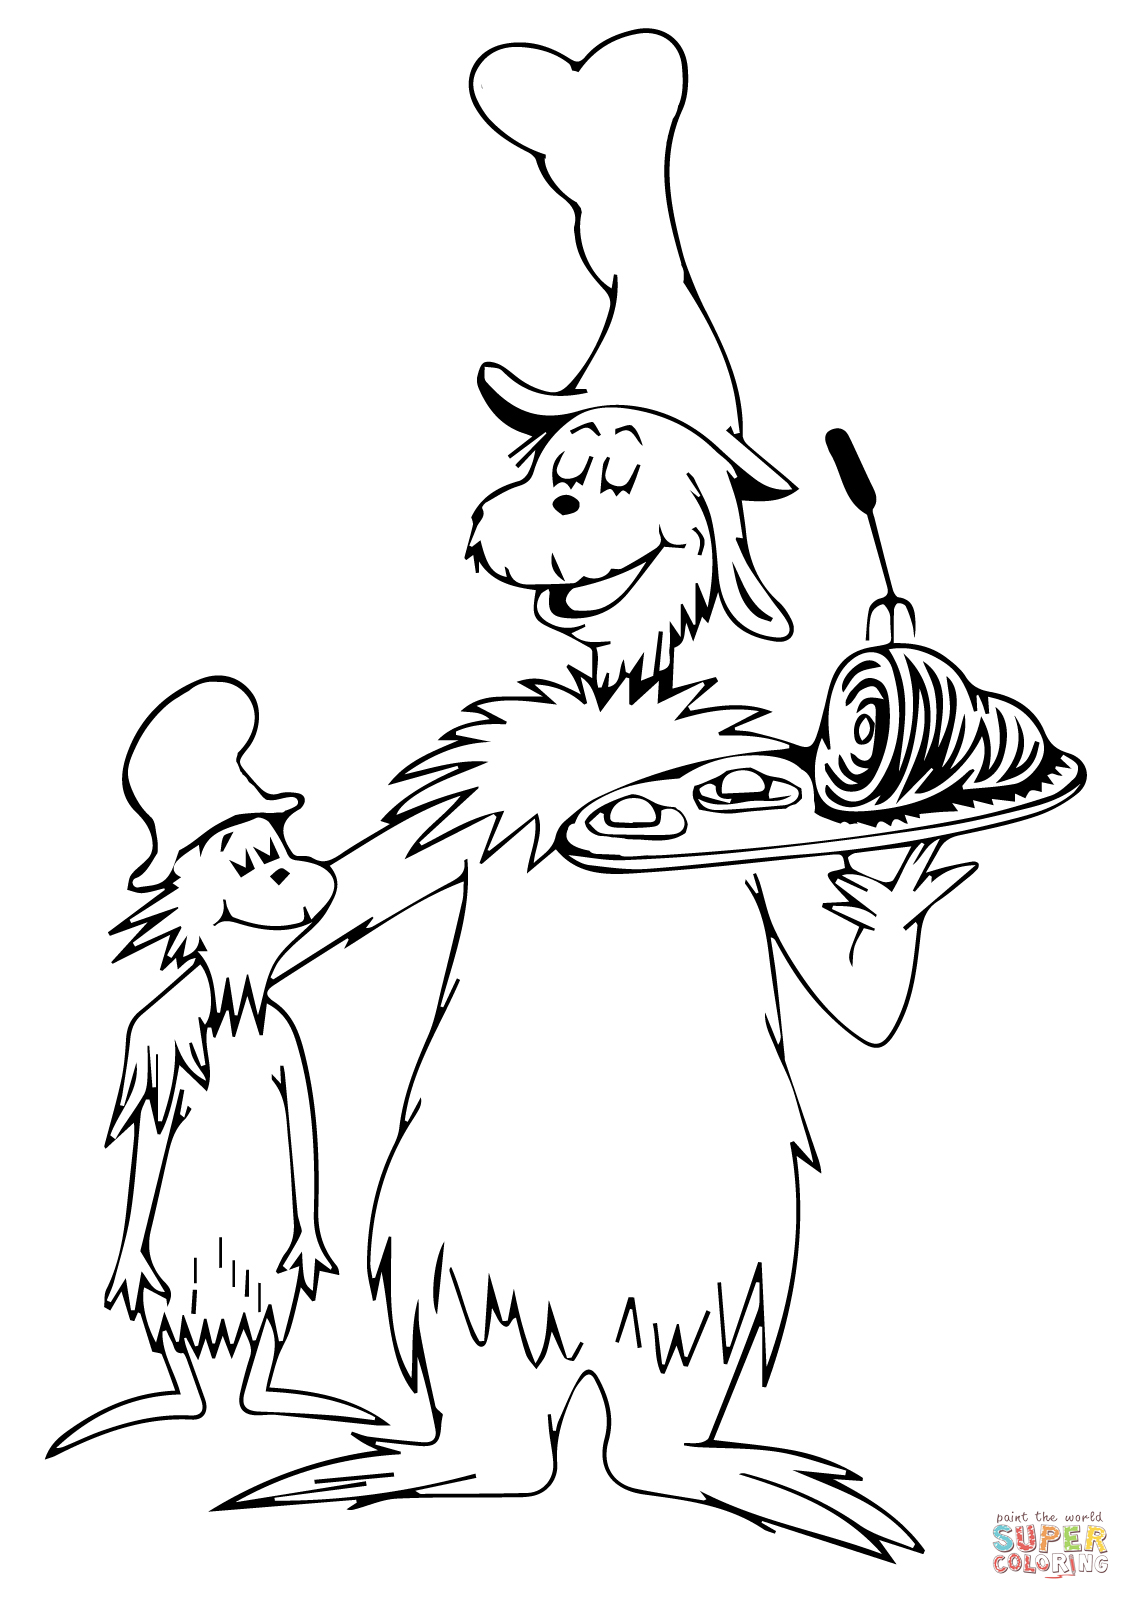 Dr seuss coloring pages green eggs and ham az coloring pages for Dr seuss character coloring pages